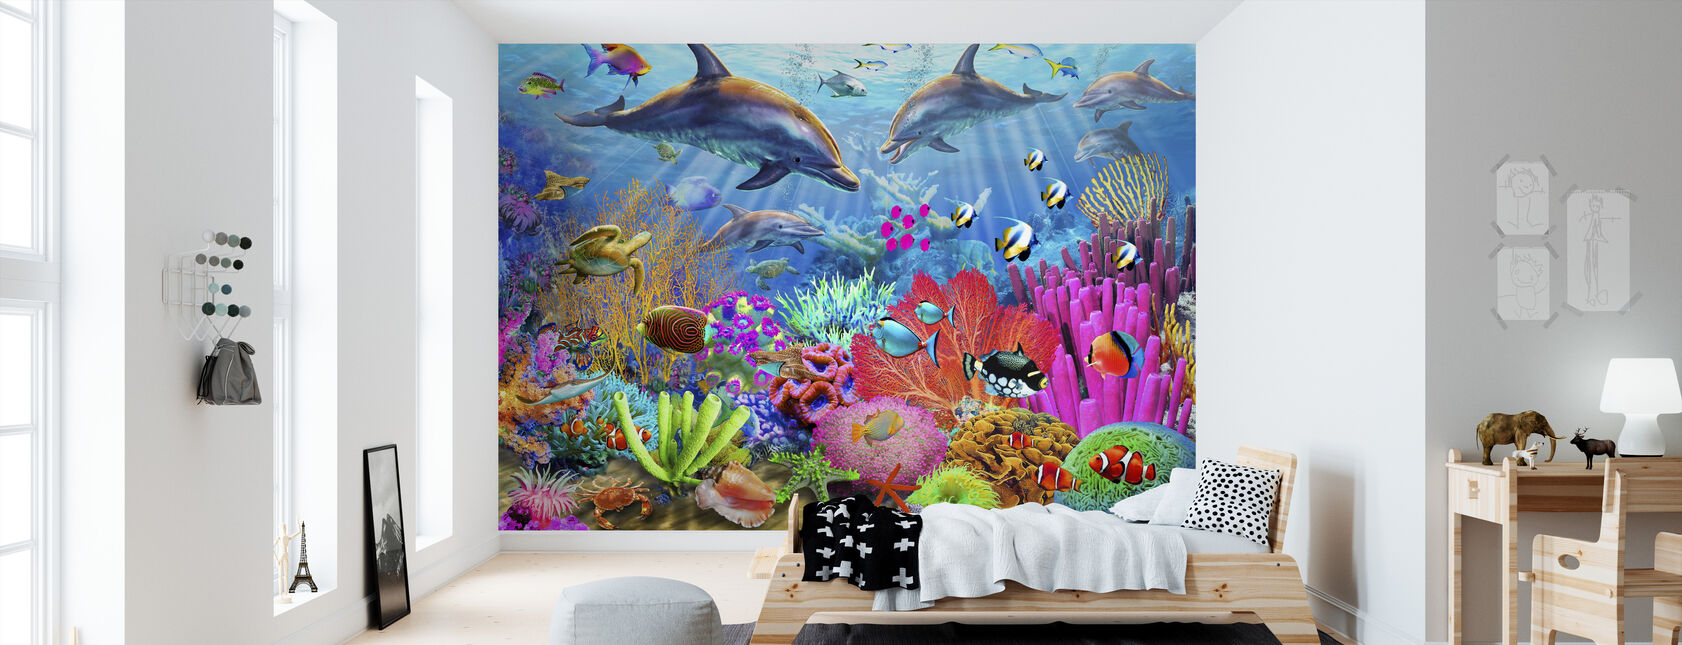 Dolphin Coral Reef - Wallpaper - Kids Room